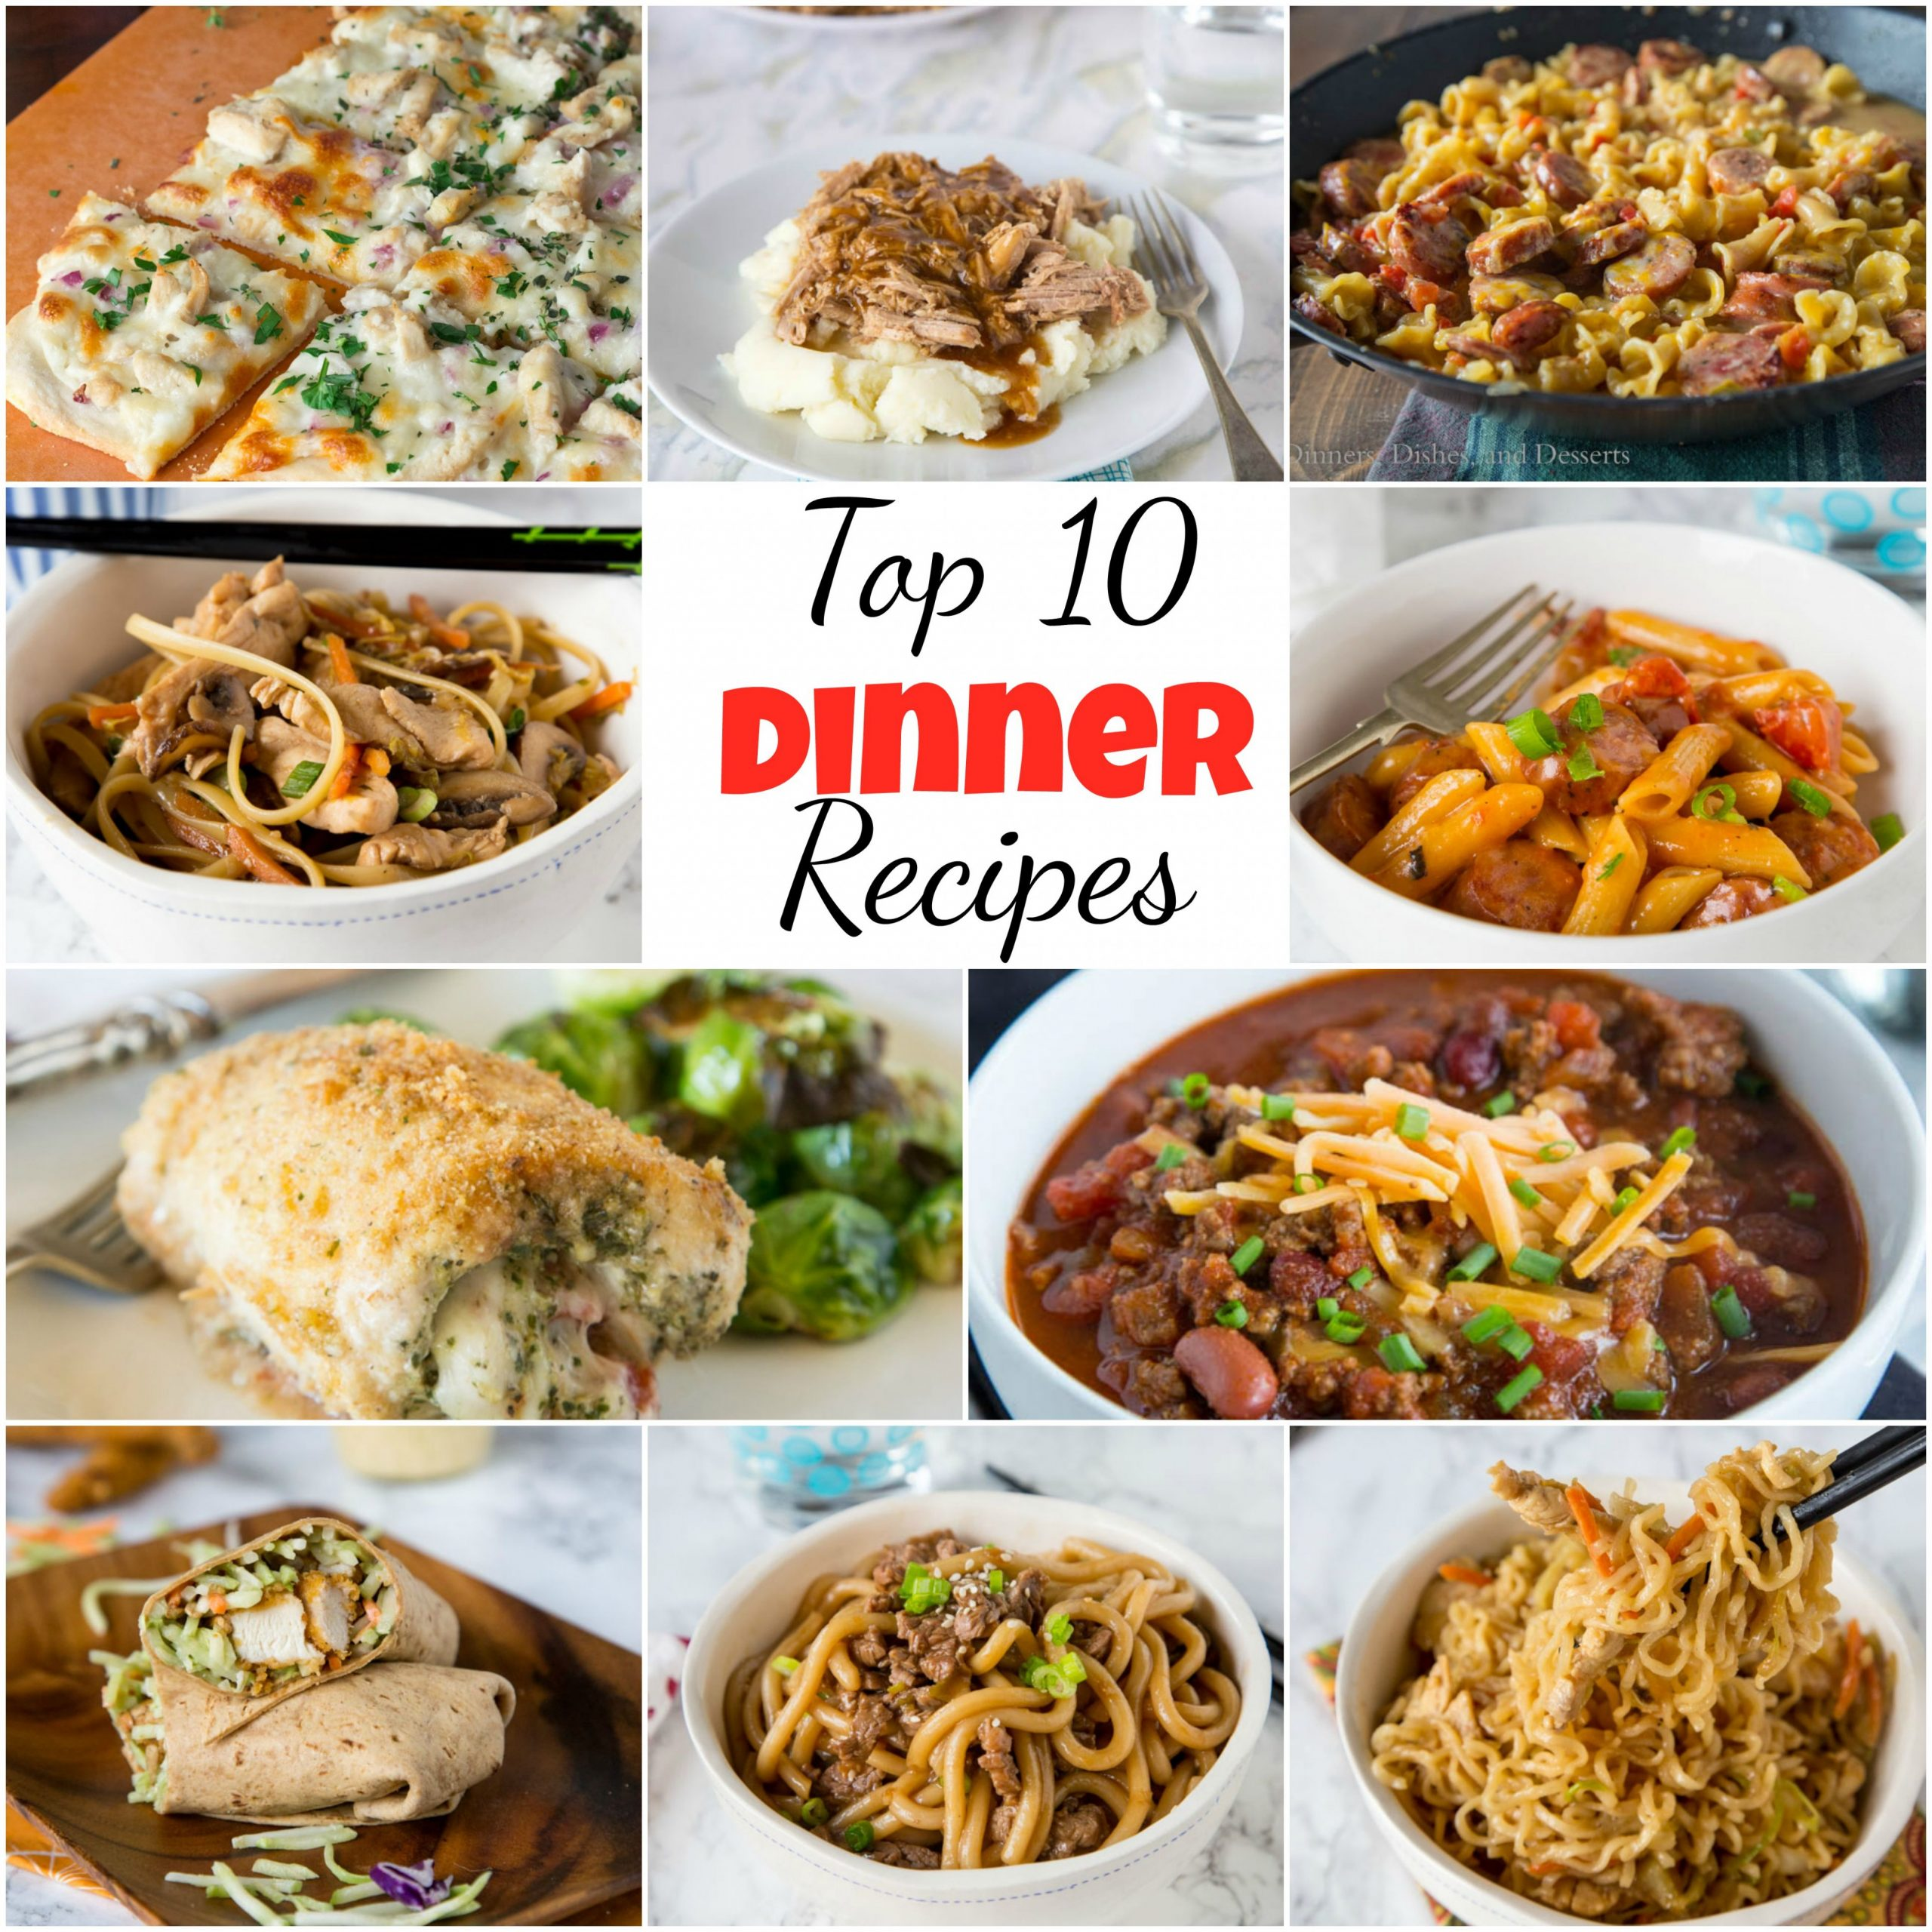 Top 8 Dinner Recipes - Dinners, Dishes, and Desserts - Dinner Recipes Different